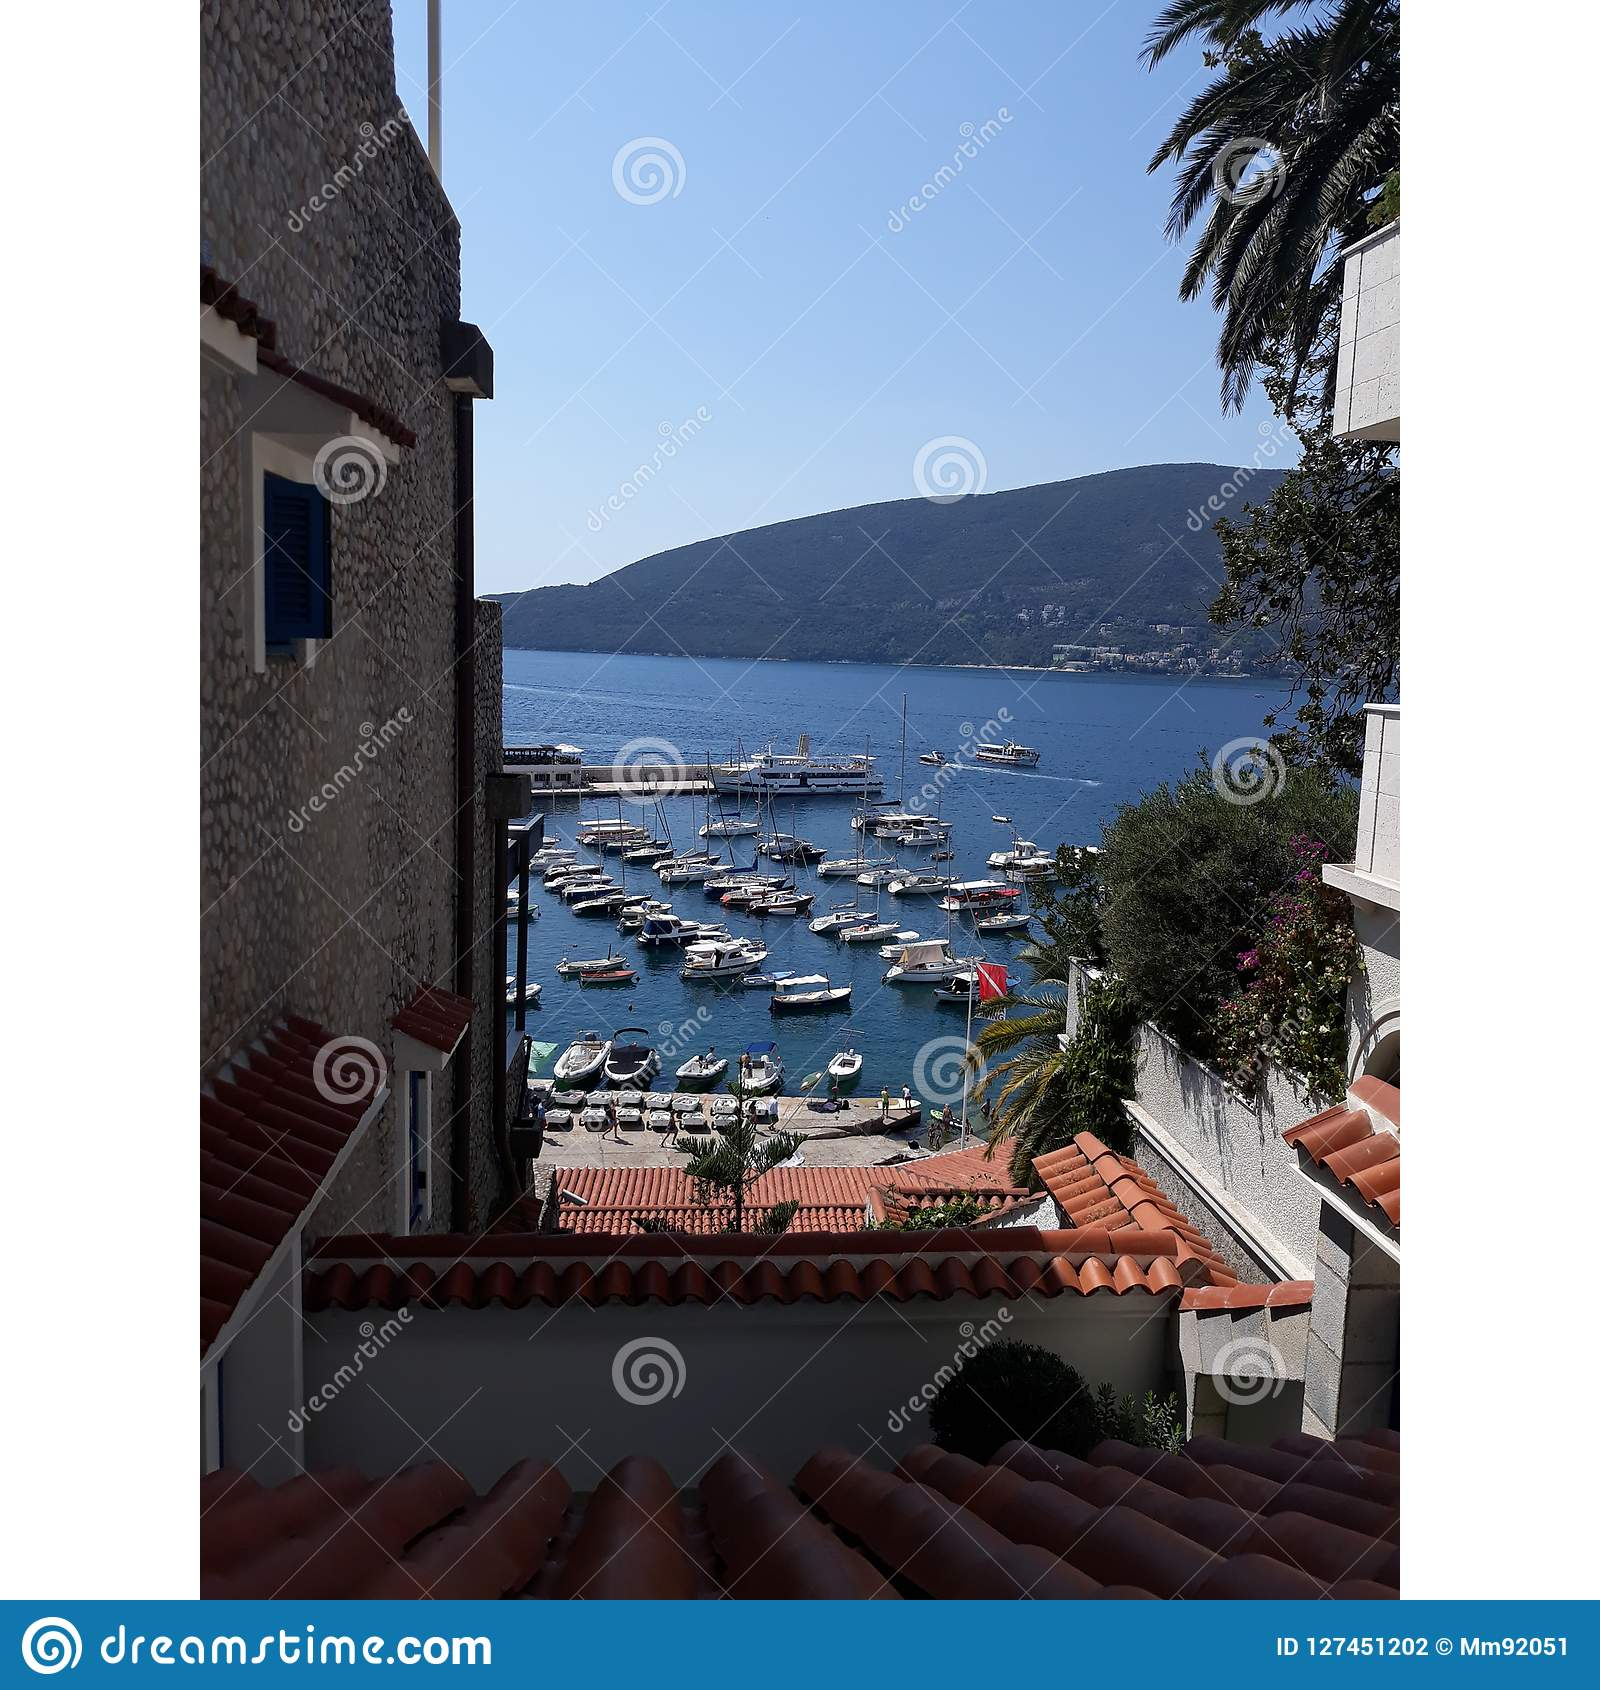 photo taken from the heights of the citadel of Herceg novi